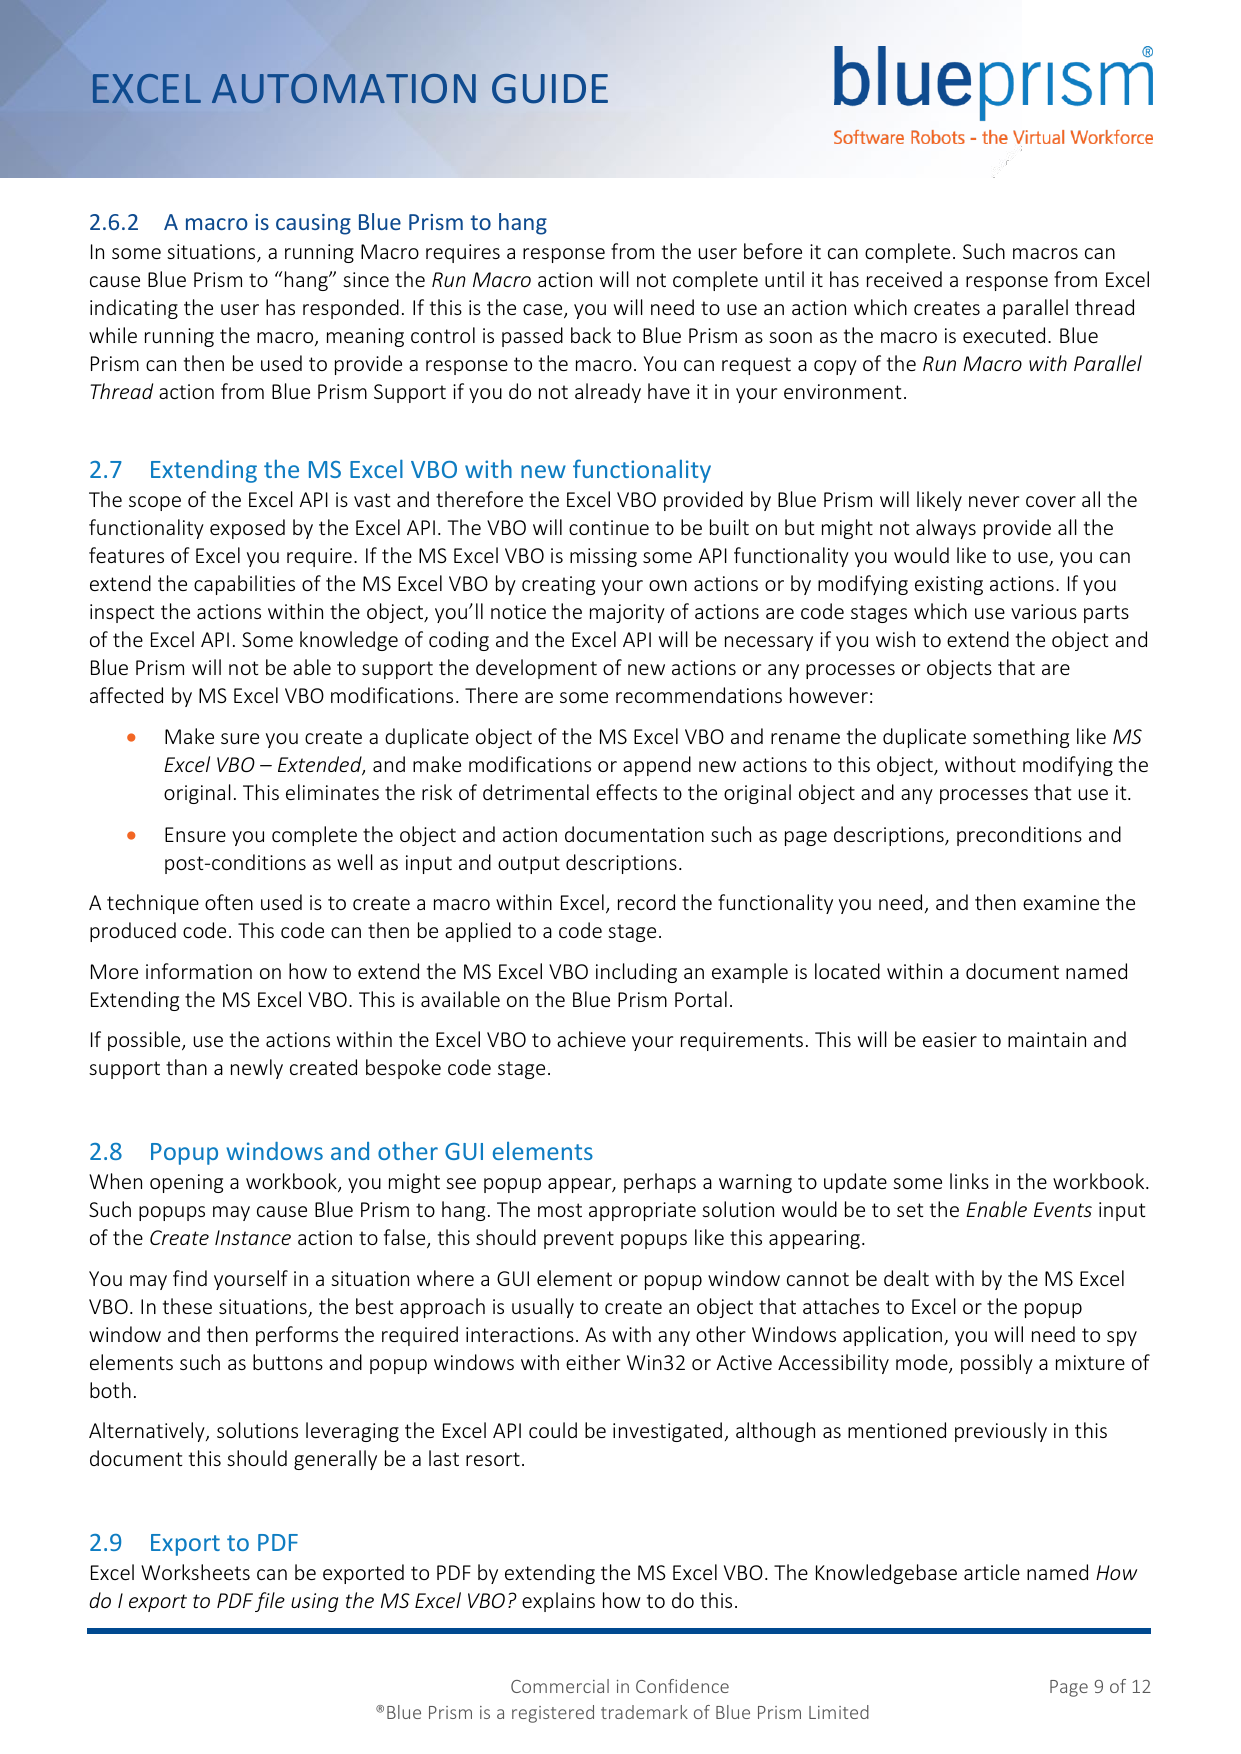 Page 9 of 12 - Blue Prism Excel Automation Guide